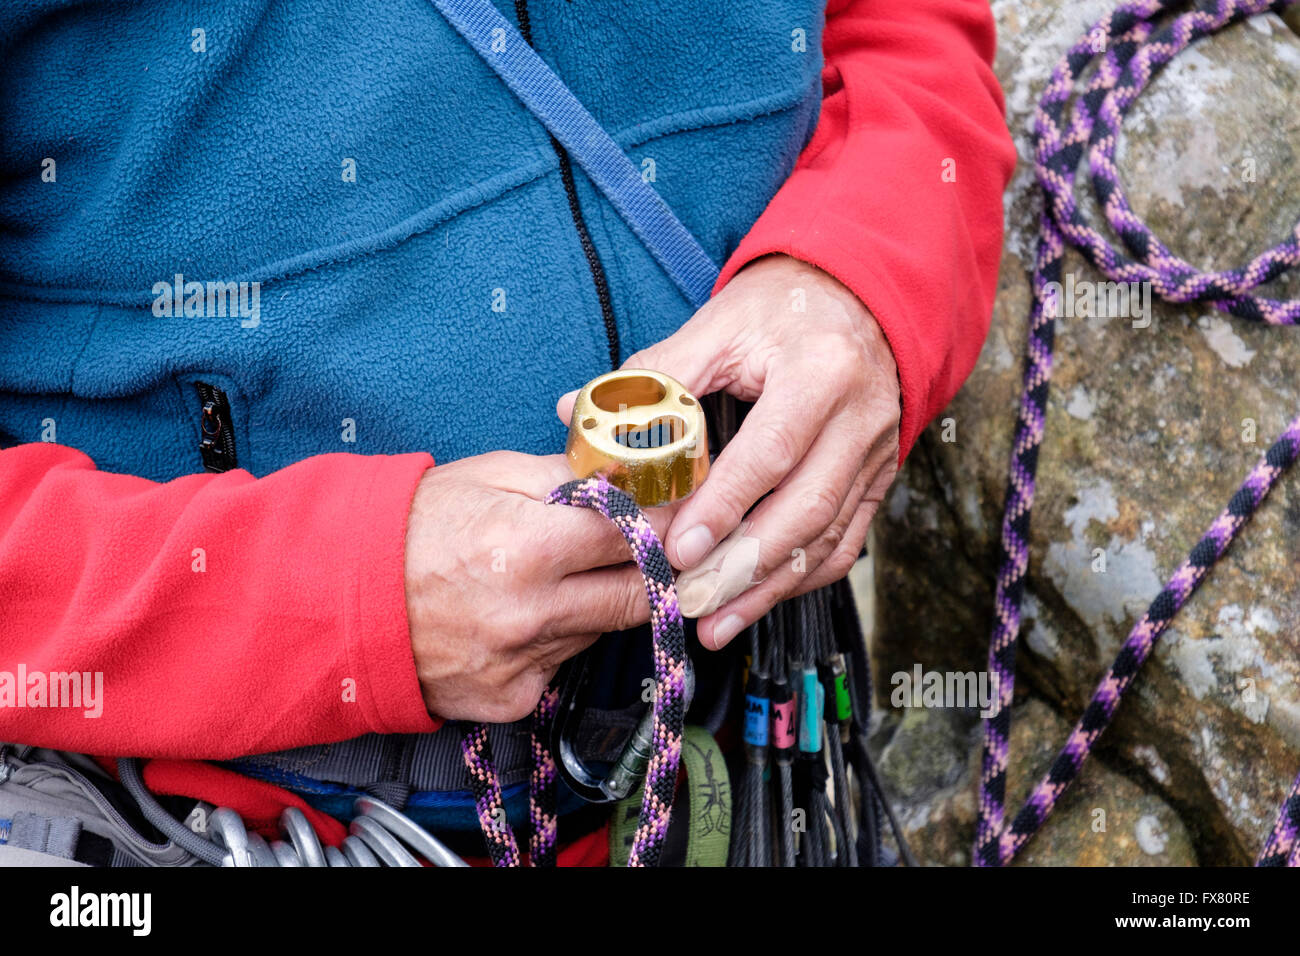 Mountain climber holding a belay device rappel descender for abseiling or belaying. Wales, UK, Britain - Stock Image